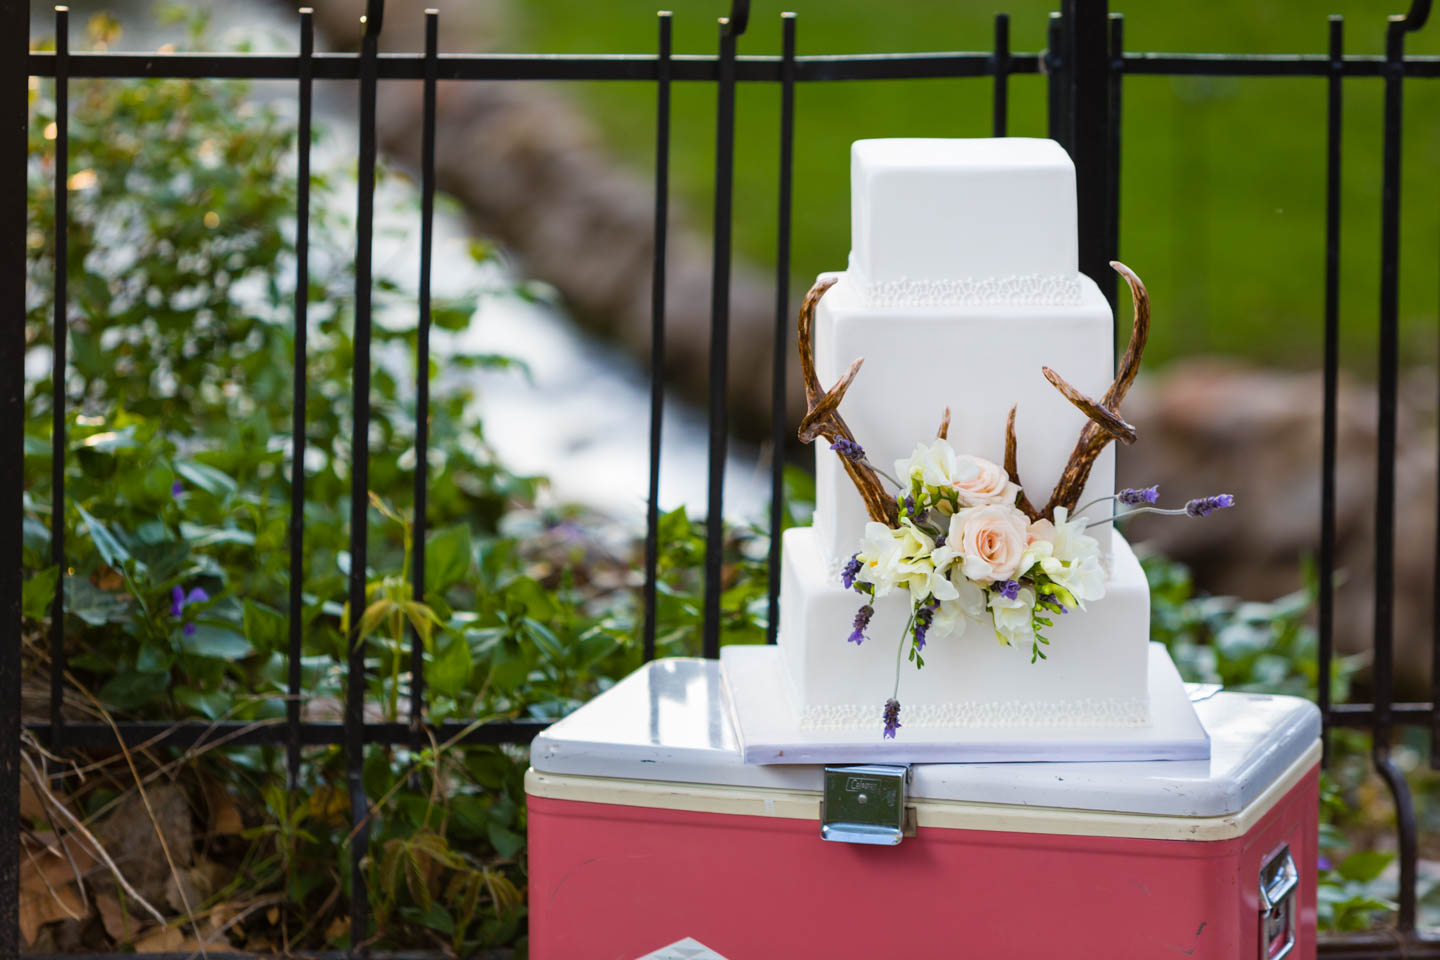 Deer antlers and wedding cakes are all the rage